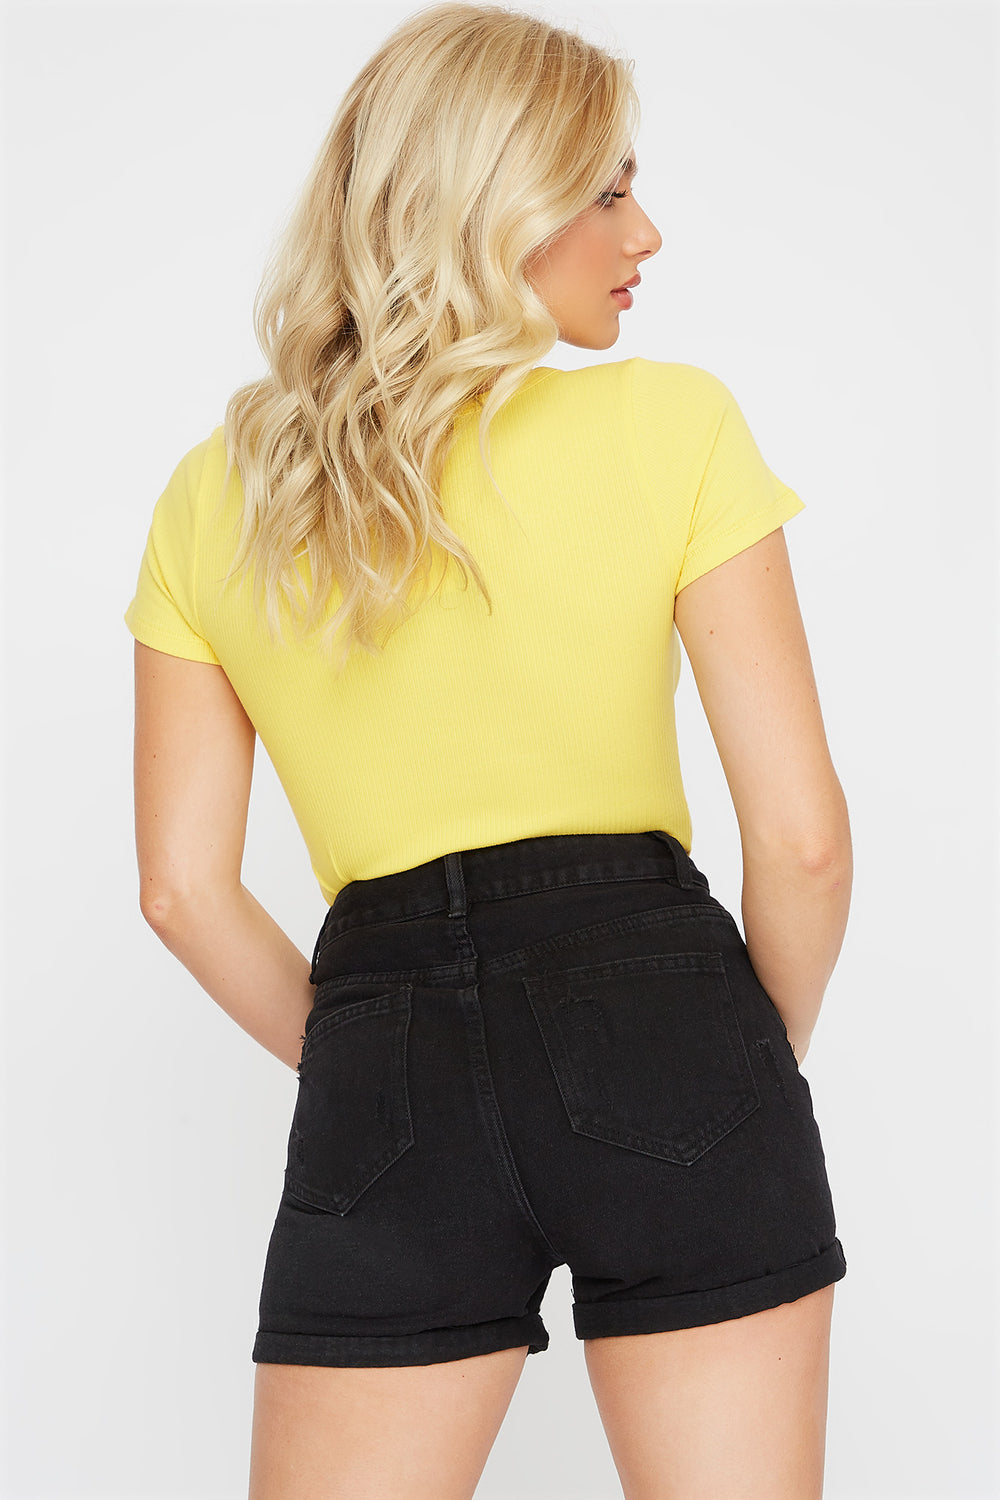 Ribbed V-Neck Button T-Shirt Yellow